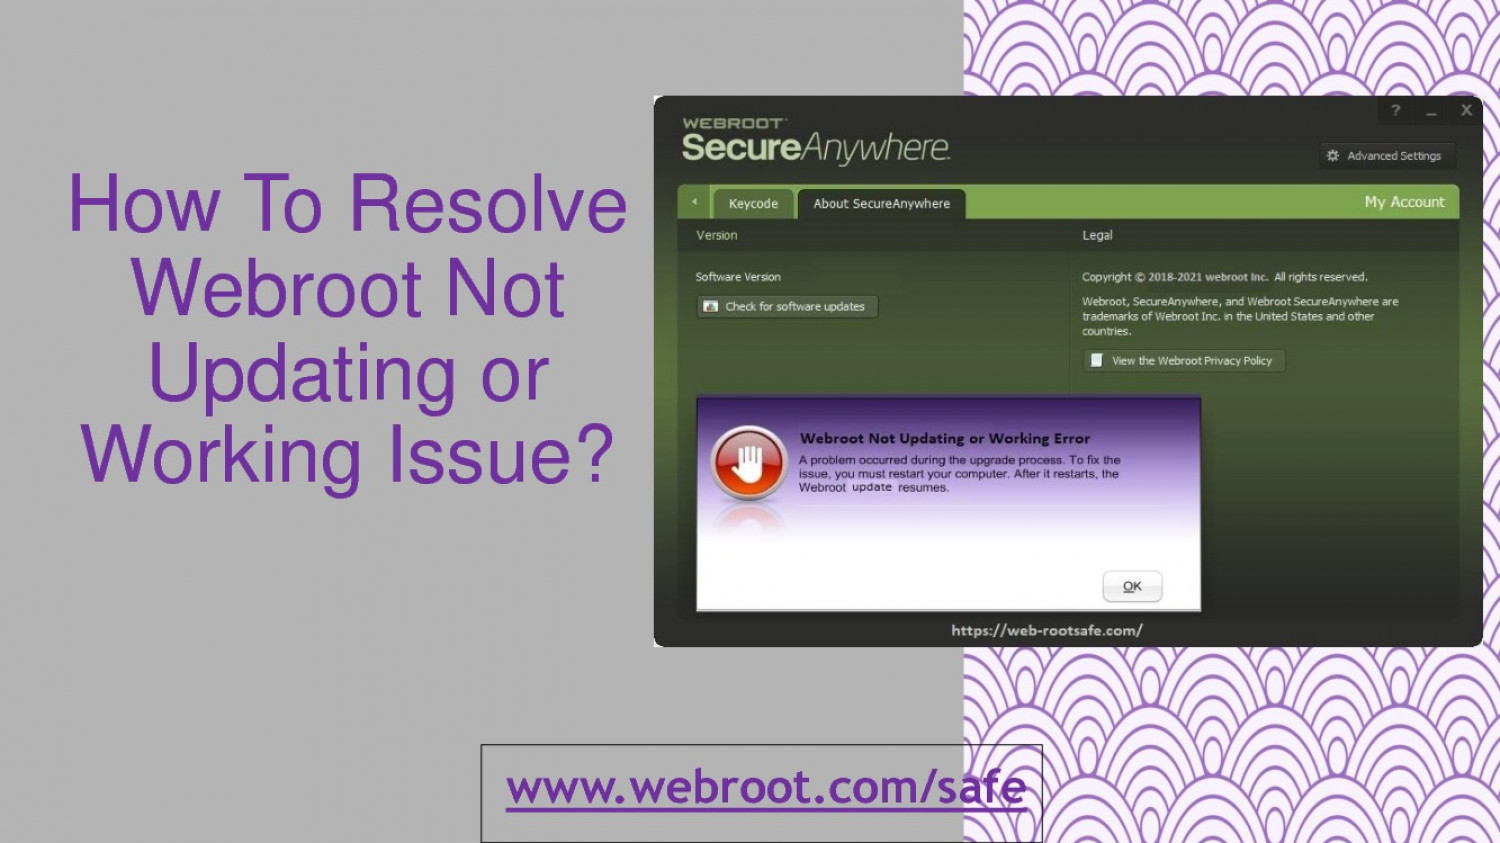 How To Resolve Webroot Not Updating or Working Issue? Infographic